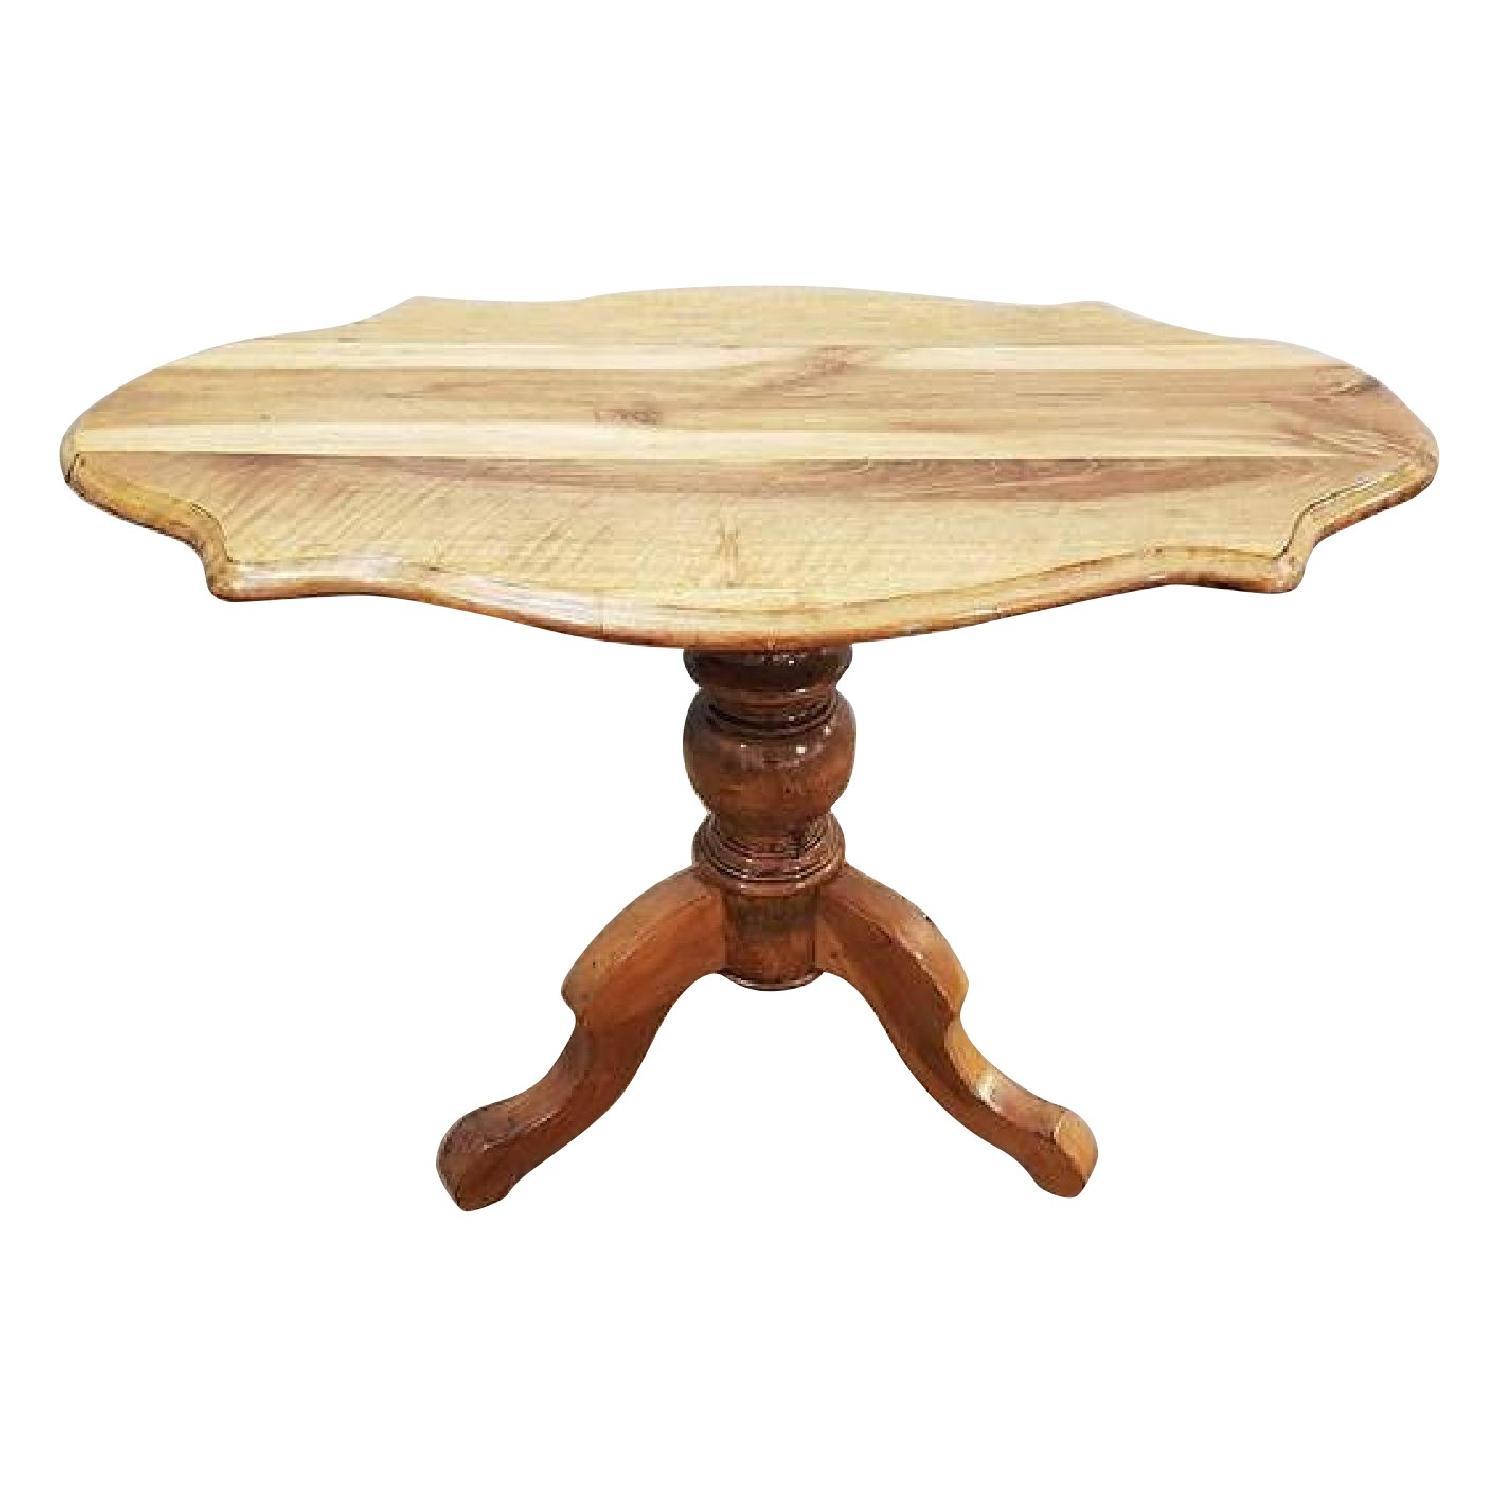 Antique French Round Walnut Tilt-Top Side Table